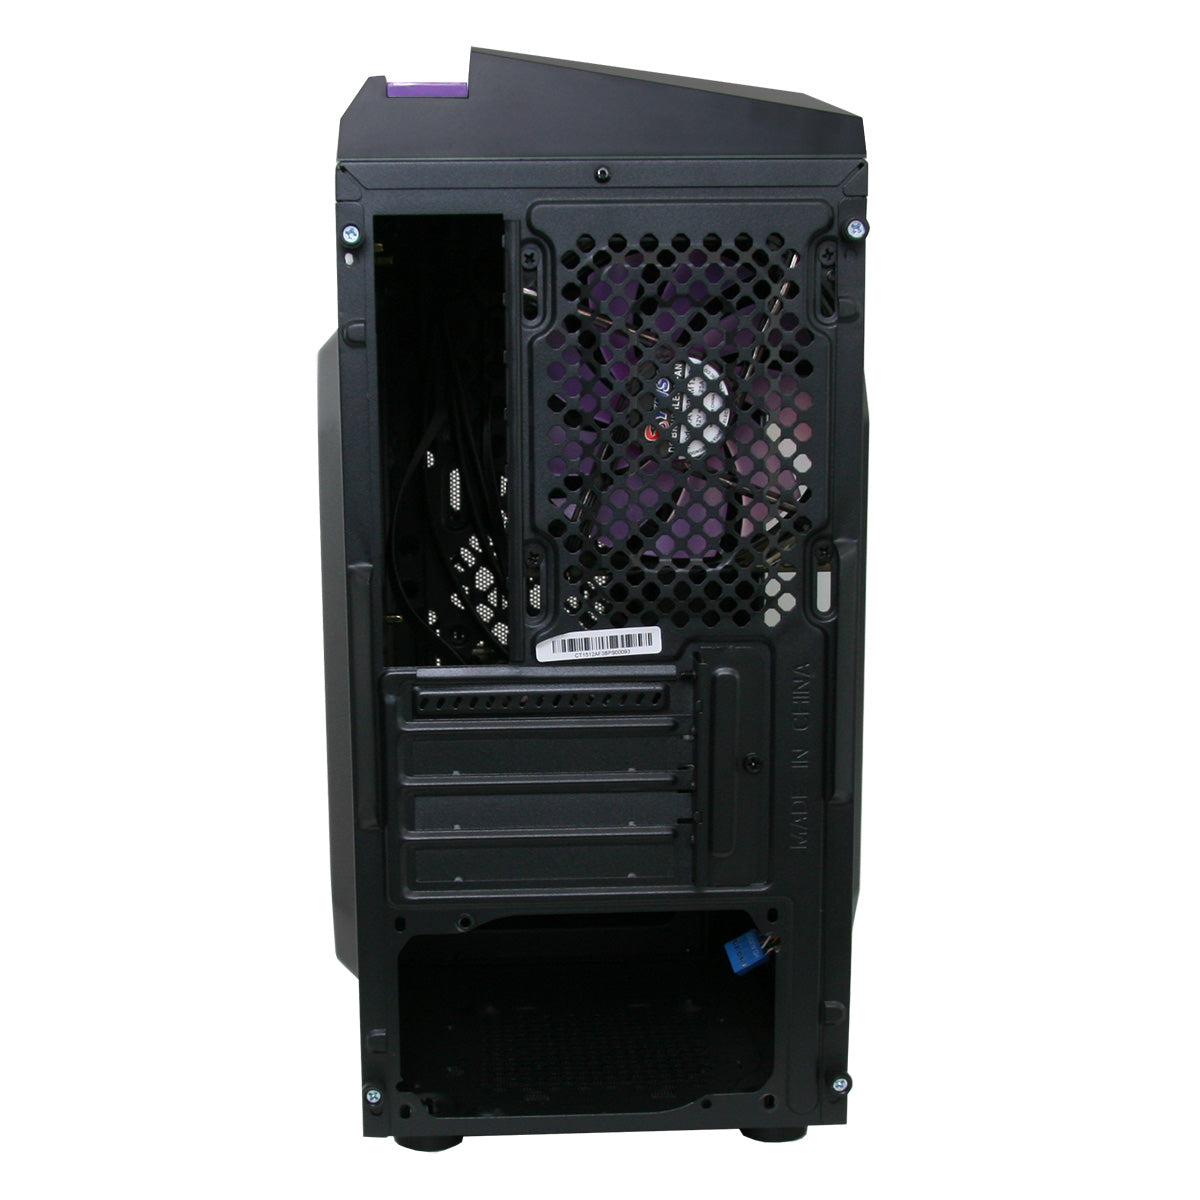 WINDOWS 10 GAMING COMPUTER PC 8GB 1TB HDD INTEL CORE I3 DUAL CORE PURPLE